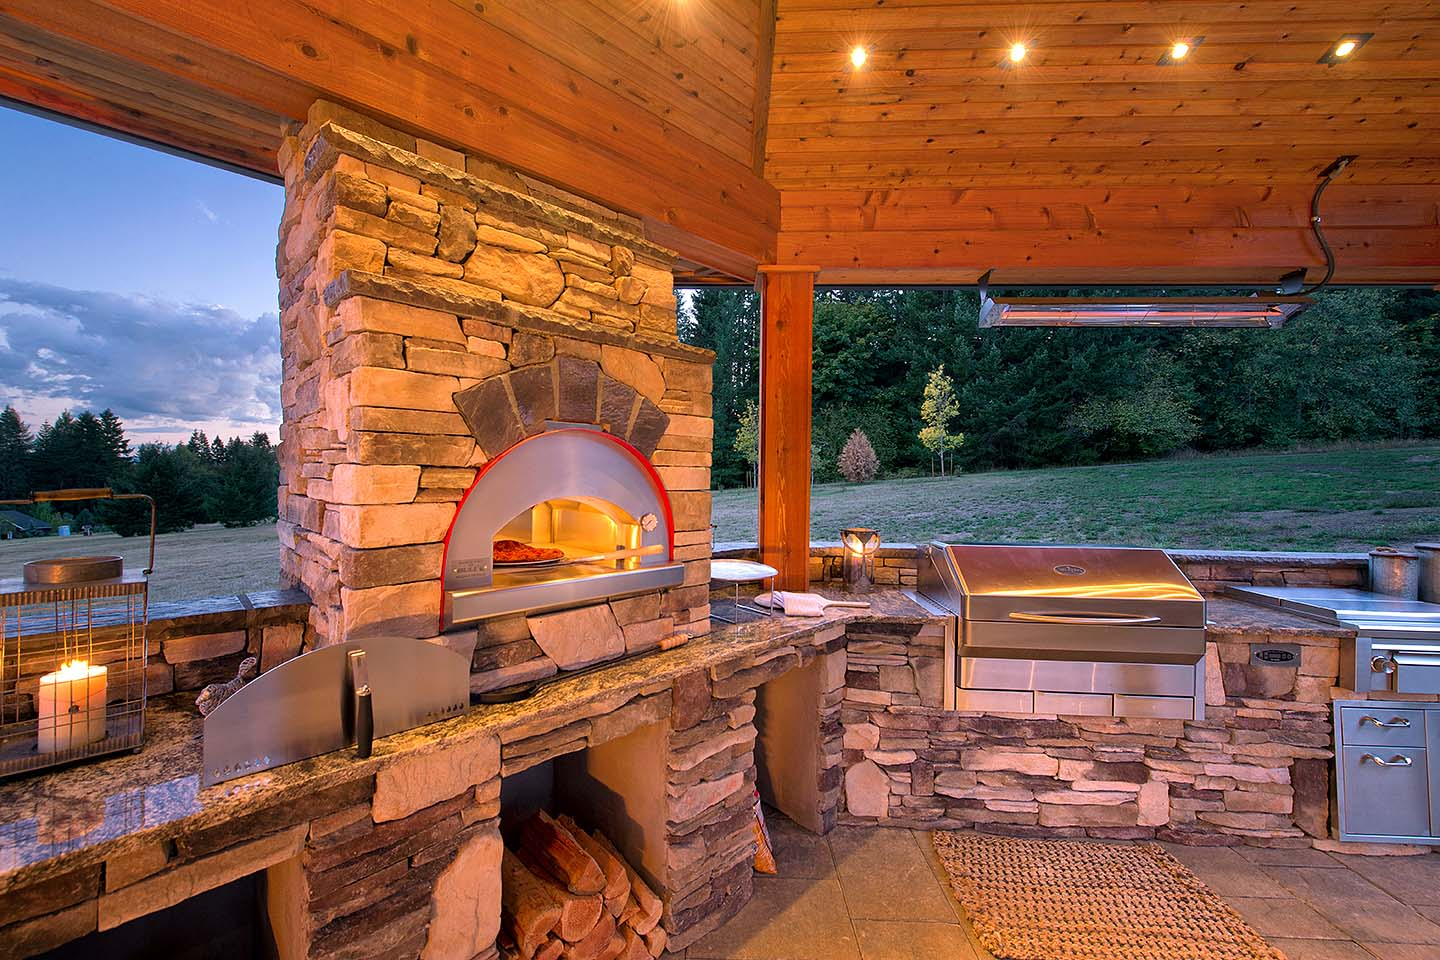 like pizza put a wood fired pizza oven in your yard or garden and enjoy cooking this family favorite over an open flame itu0027s delicious plus an outdoor